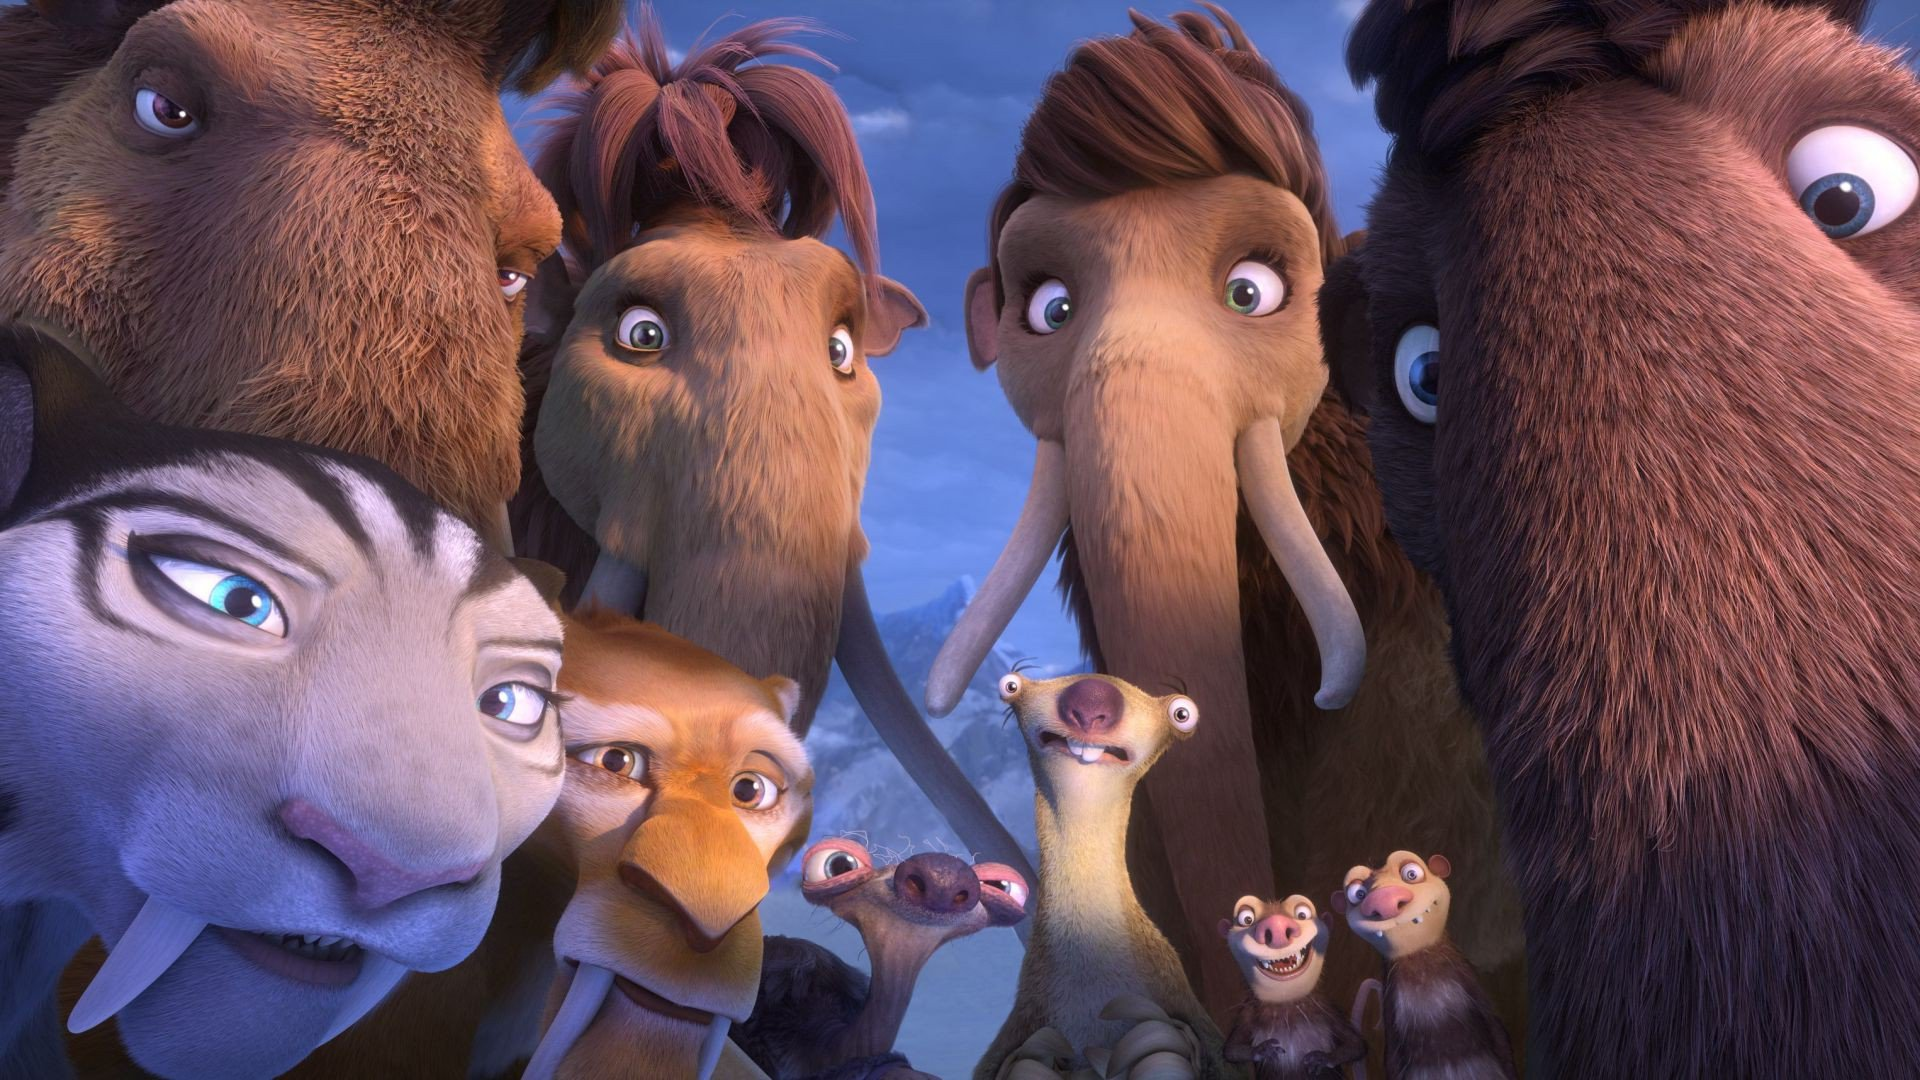 Cute Llama Wallpapers Ice Age 5 2016 Hd Movies 4k Wallpapers Images